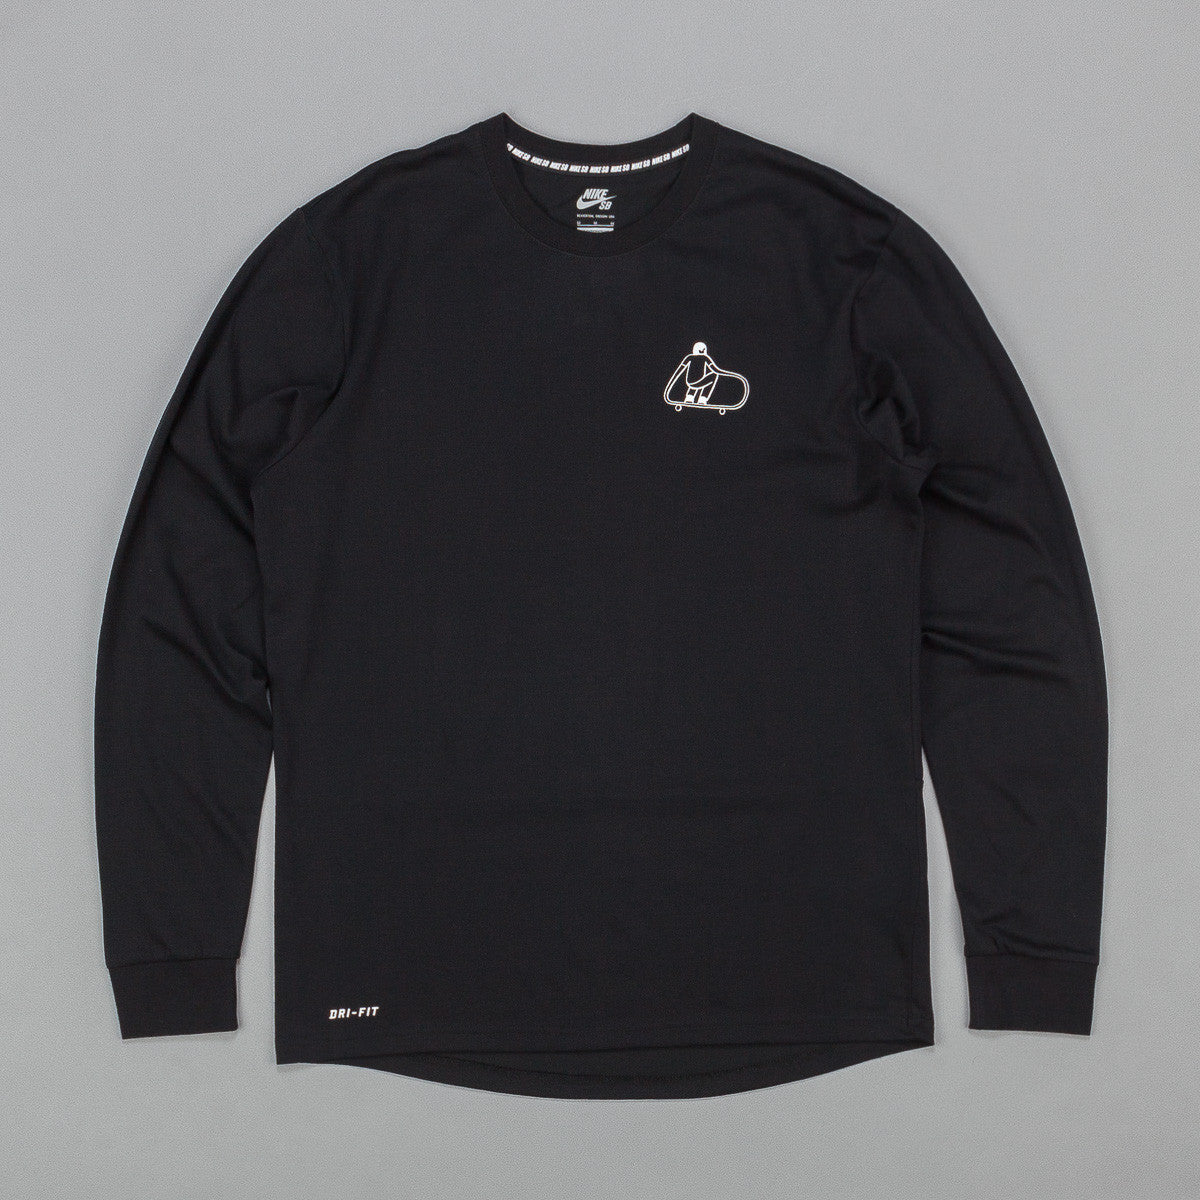 Nike SB Dri-Fit GM Long Sleeve T-Shirt